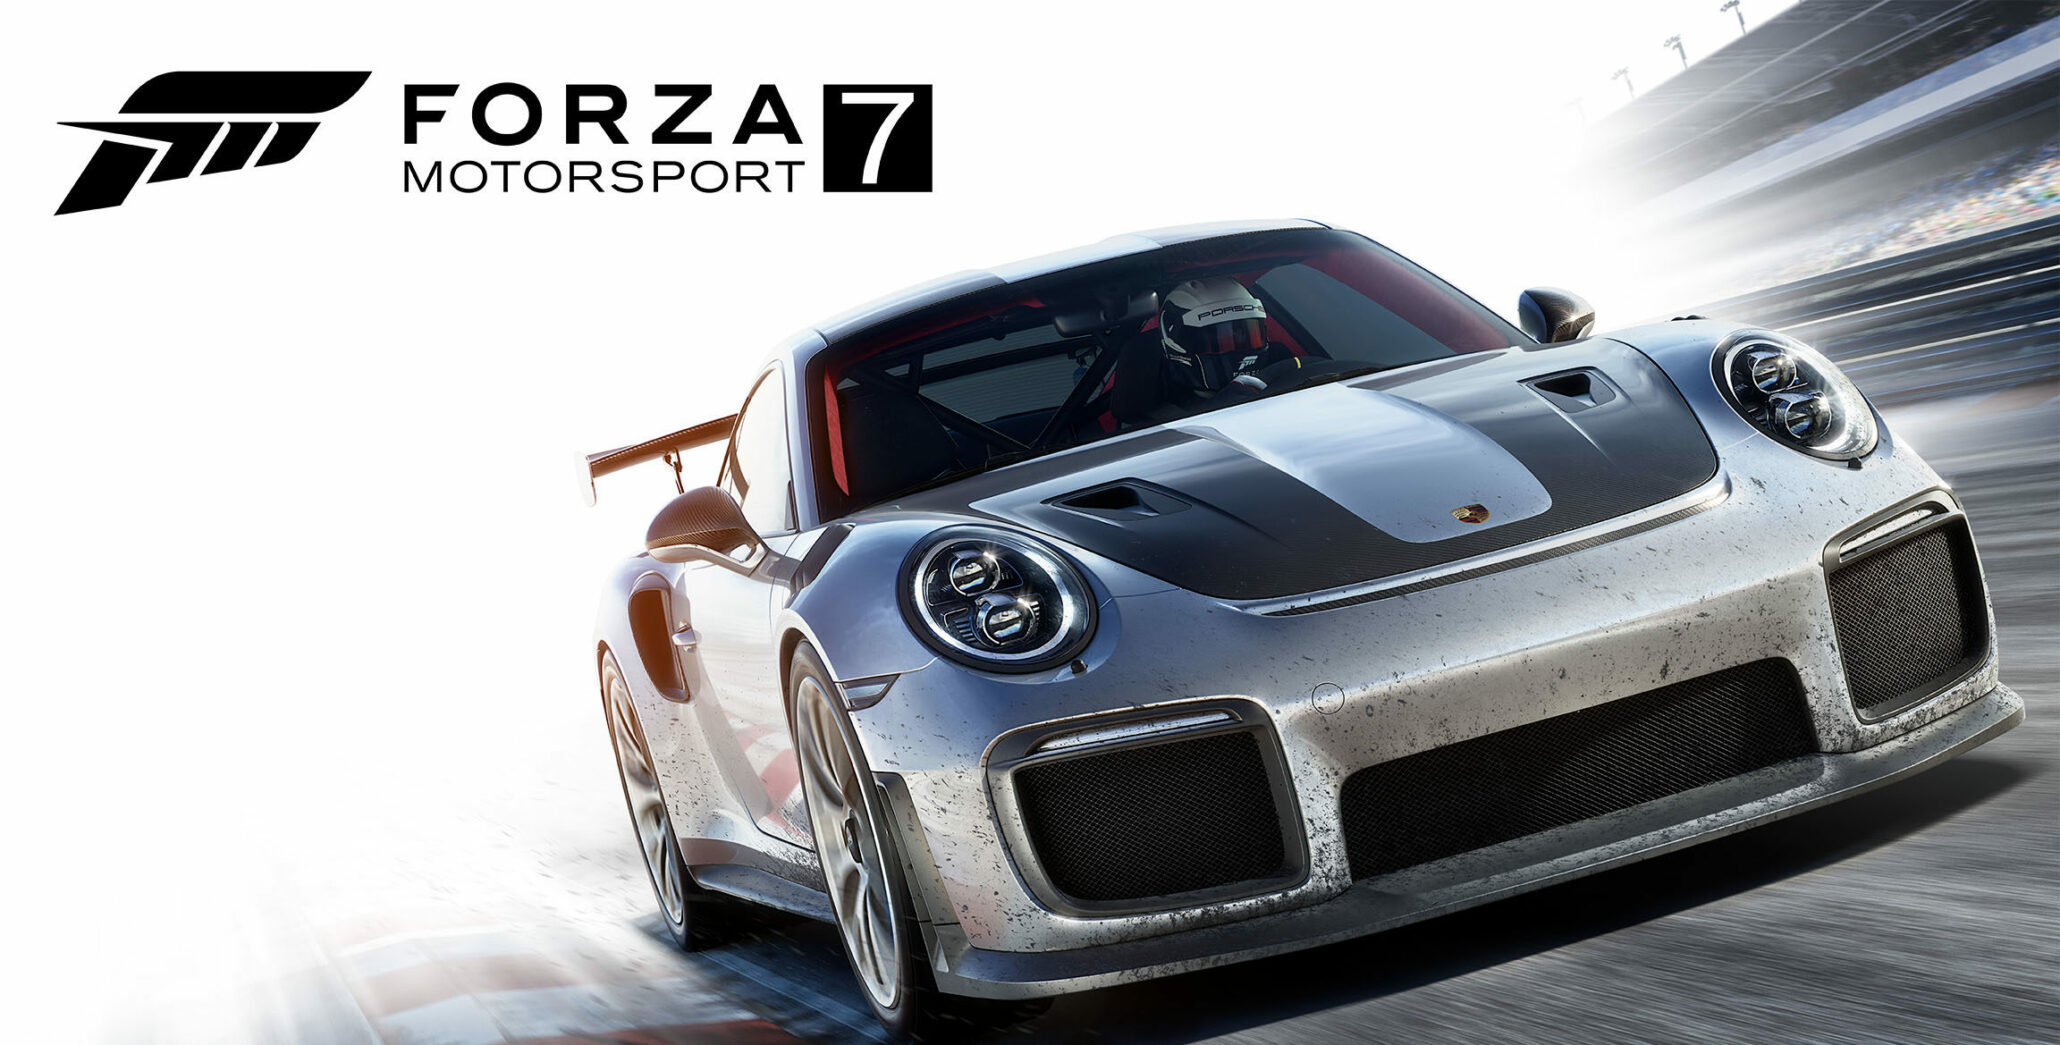 forza horizon 4 pc download 32 bit